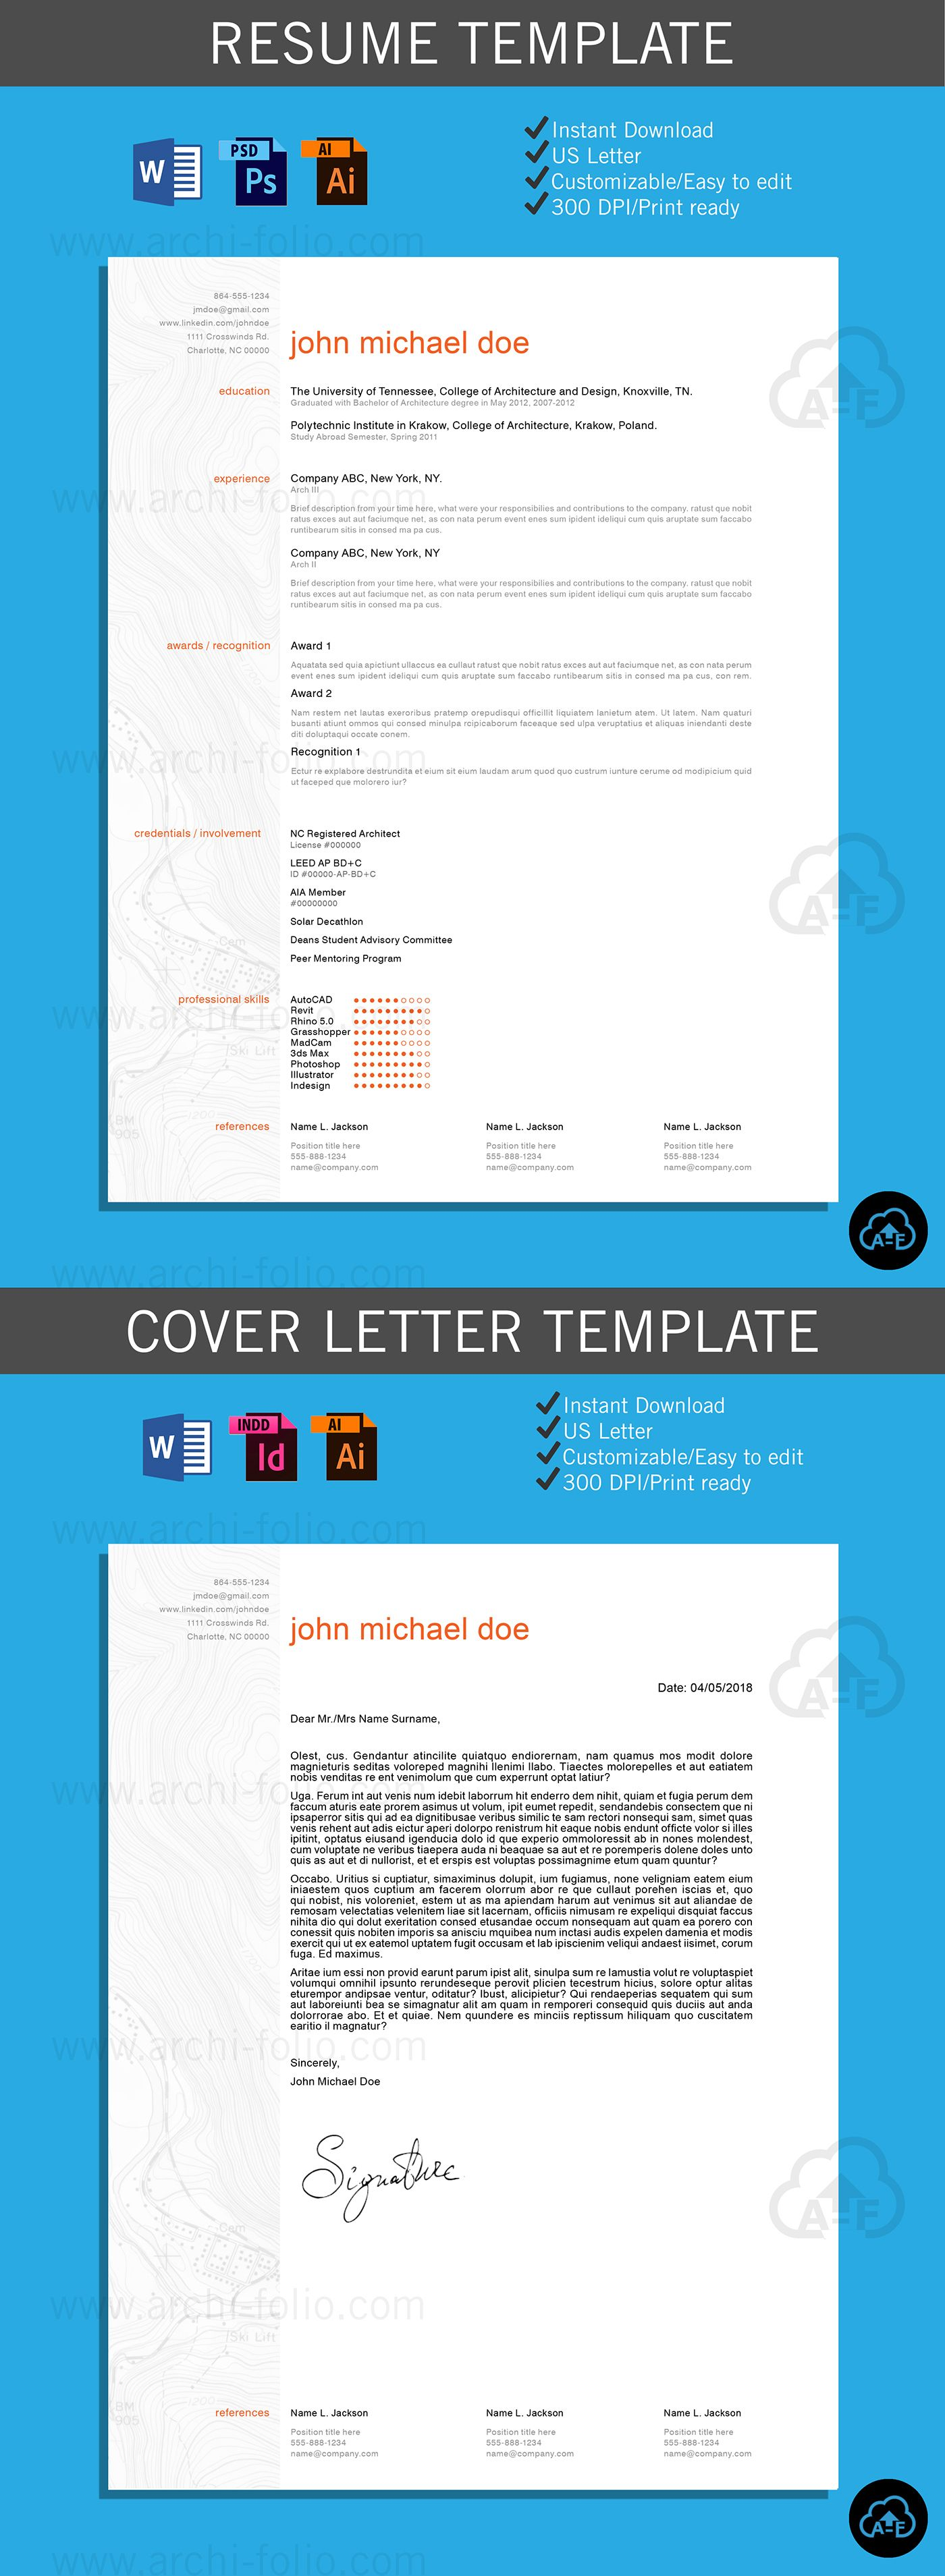 Resume zoom minimal theme on behance resumes architecture resume zoom minimal theme altavistaventures Gallery